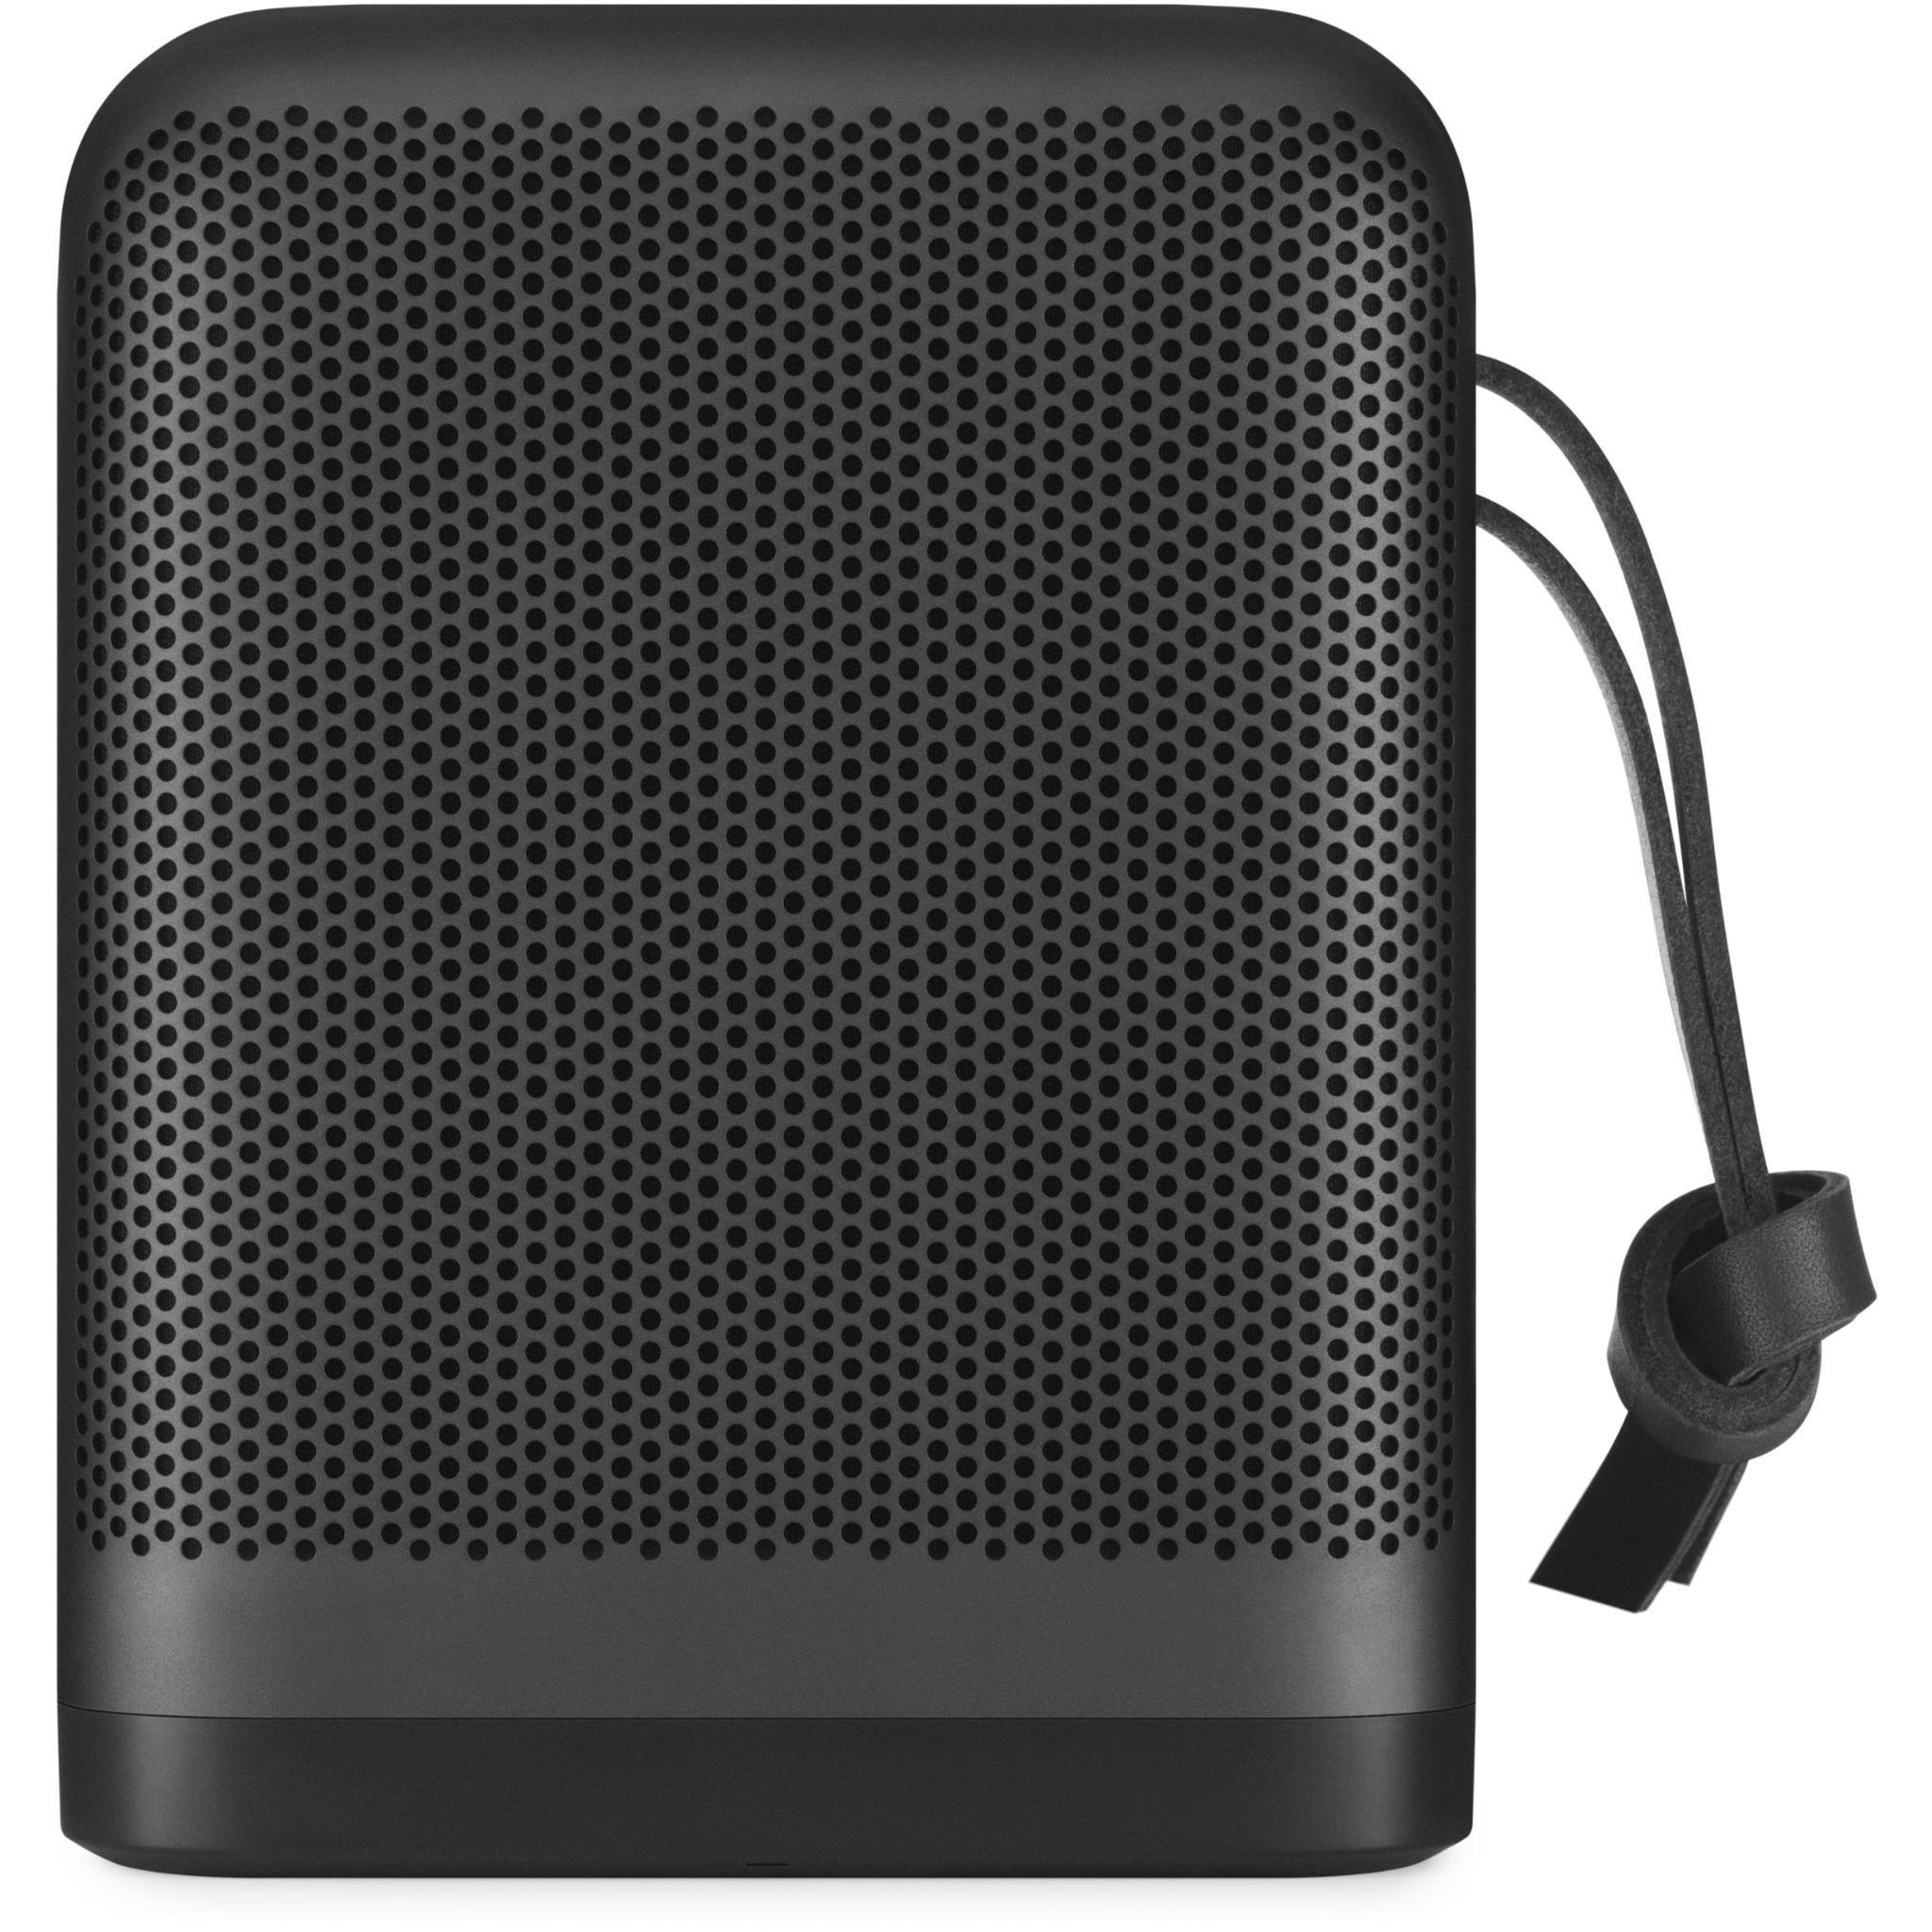 B&O Beoplay P6 Powerful and Portable Wireless Bluetooth Speaker (Black)